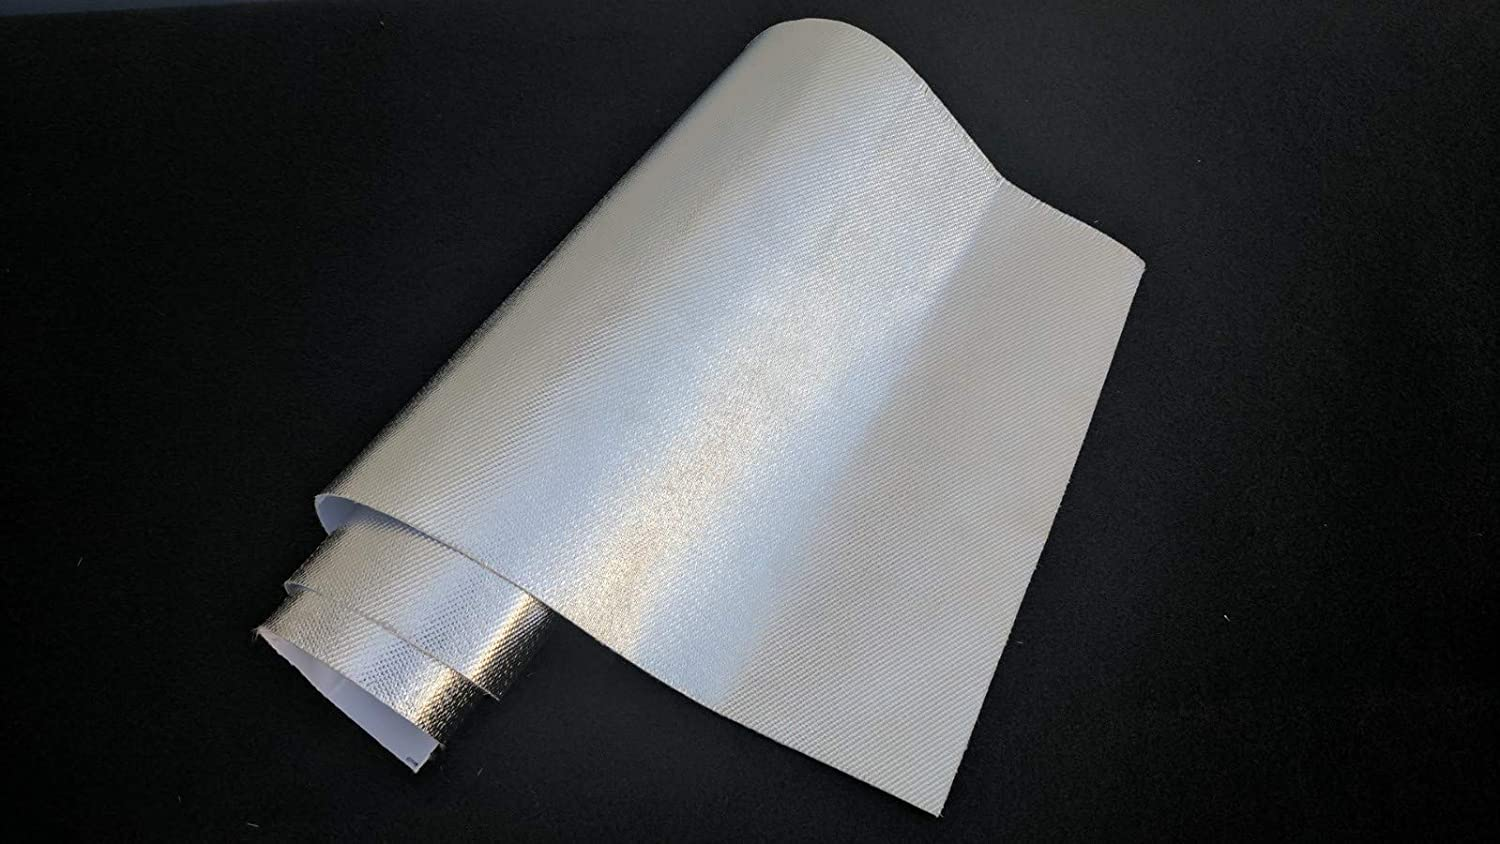 Aluminum Heat Shield Protection with Fiberglass and Self-Adhesive Backing Heat Barrier (1 Sq Foot)